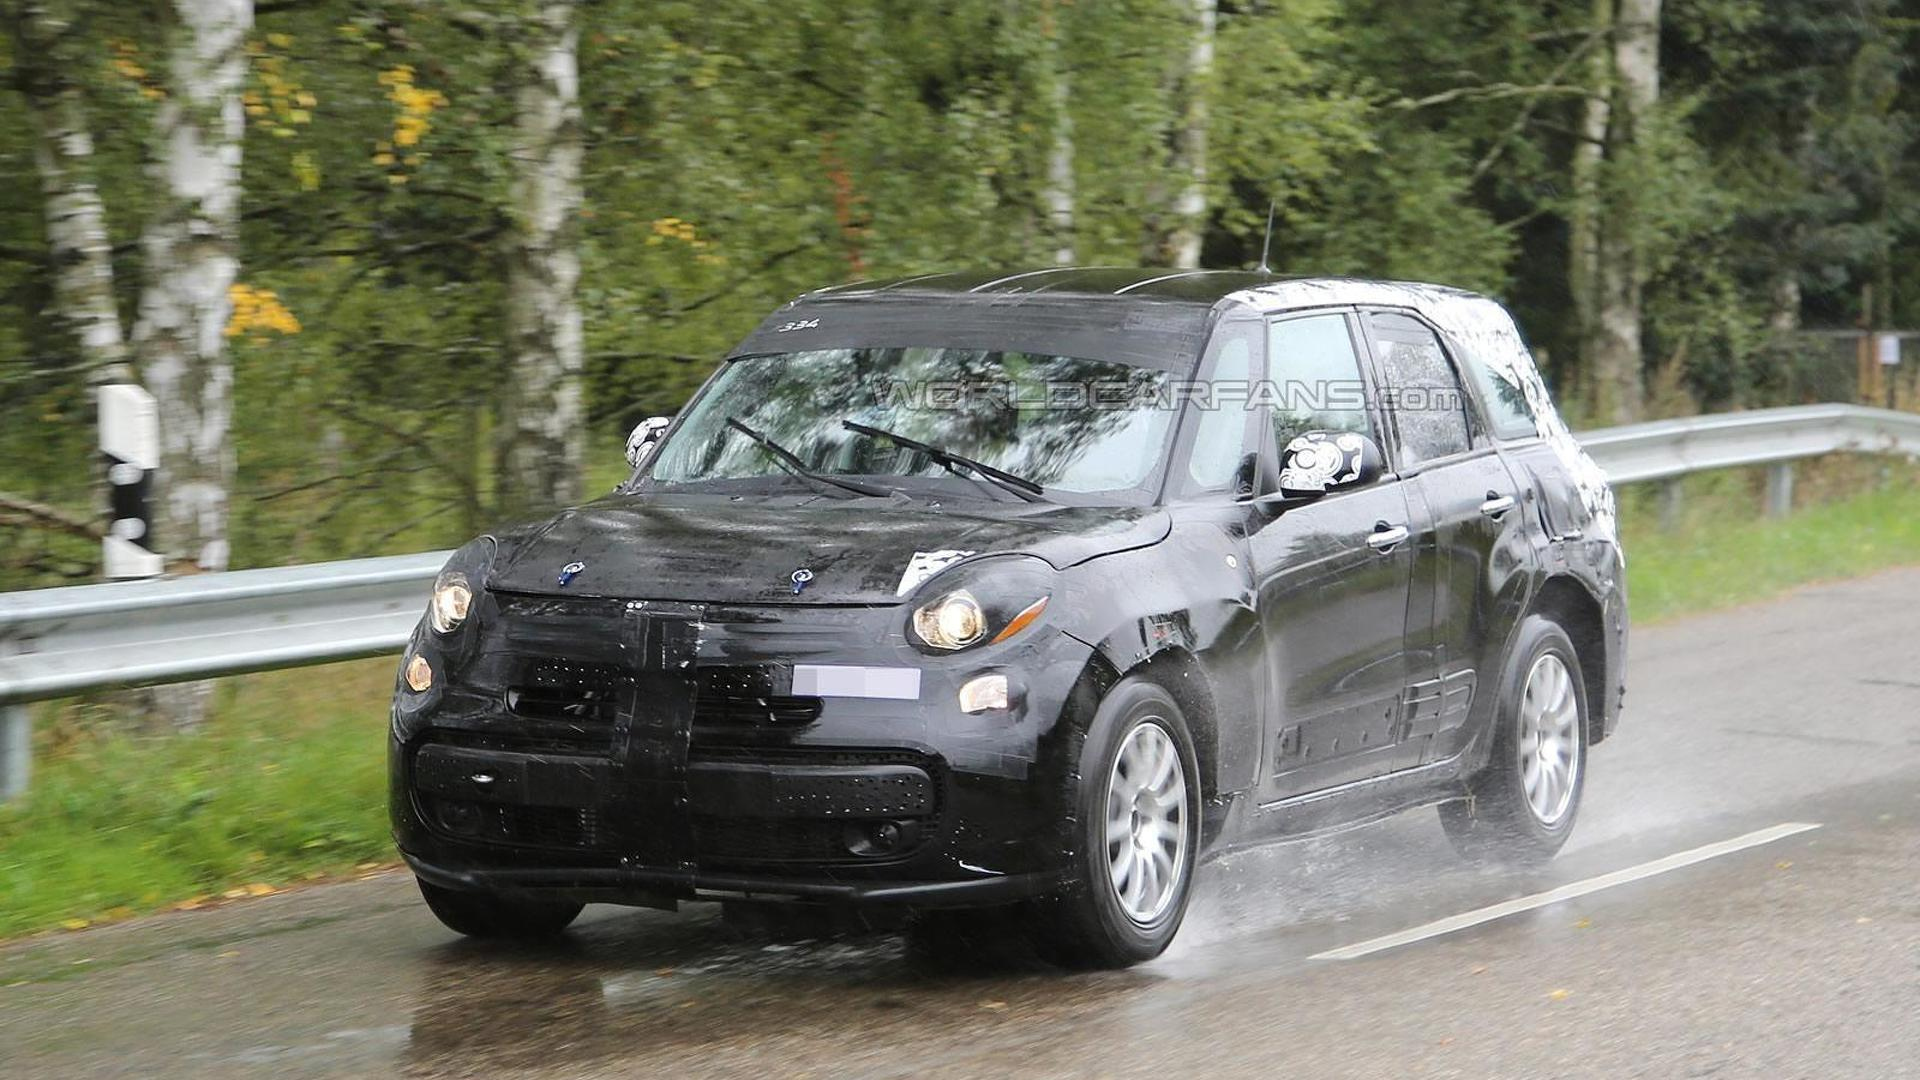 Spy pics show Alfa Romeo's first ever crossover continues testing as weird-looking Fiat 500L